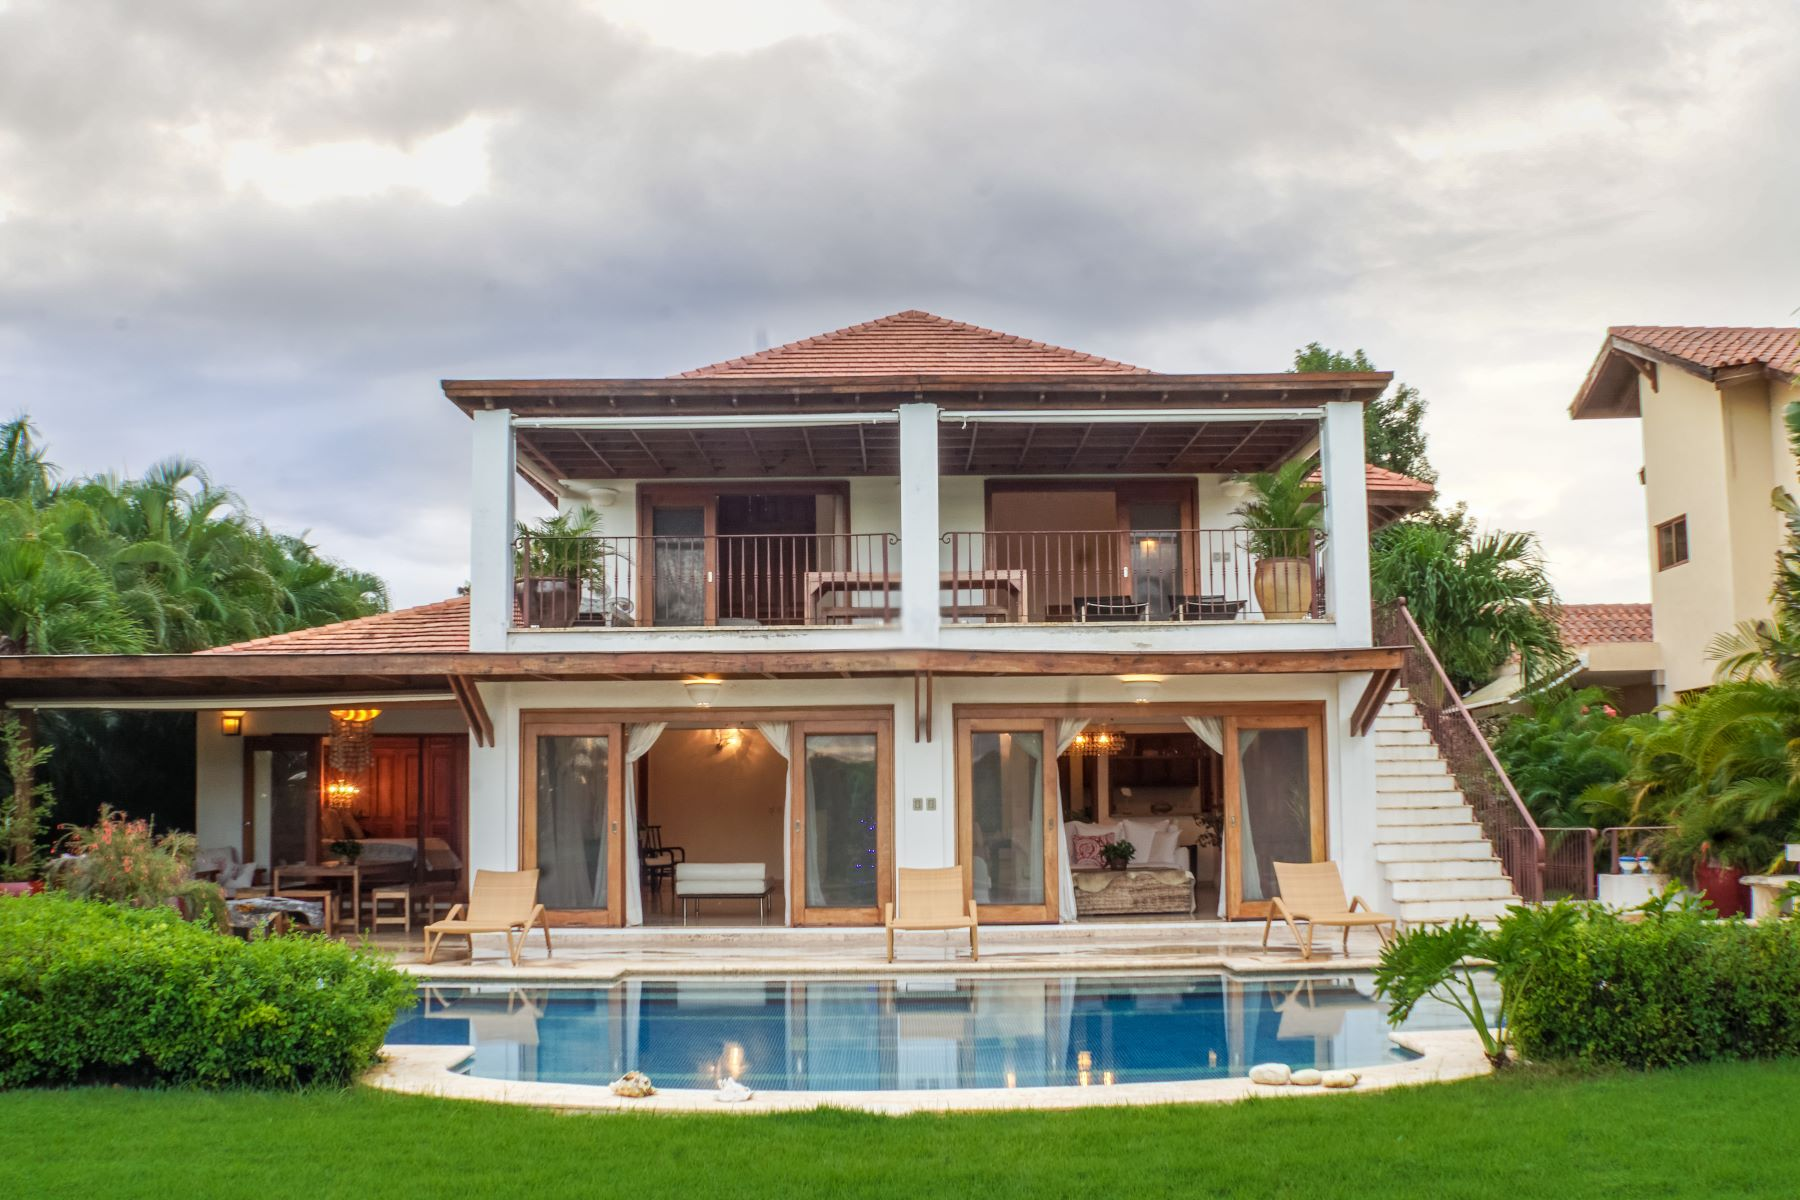 Single Family Home for Sale at Feel the Thrill of Action at this Polo view villa Casa De Campo, La Romana Dominican Republic